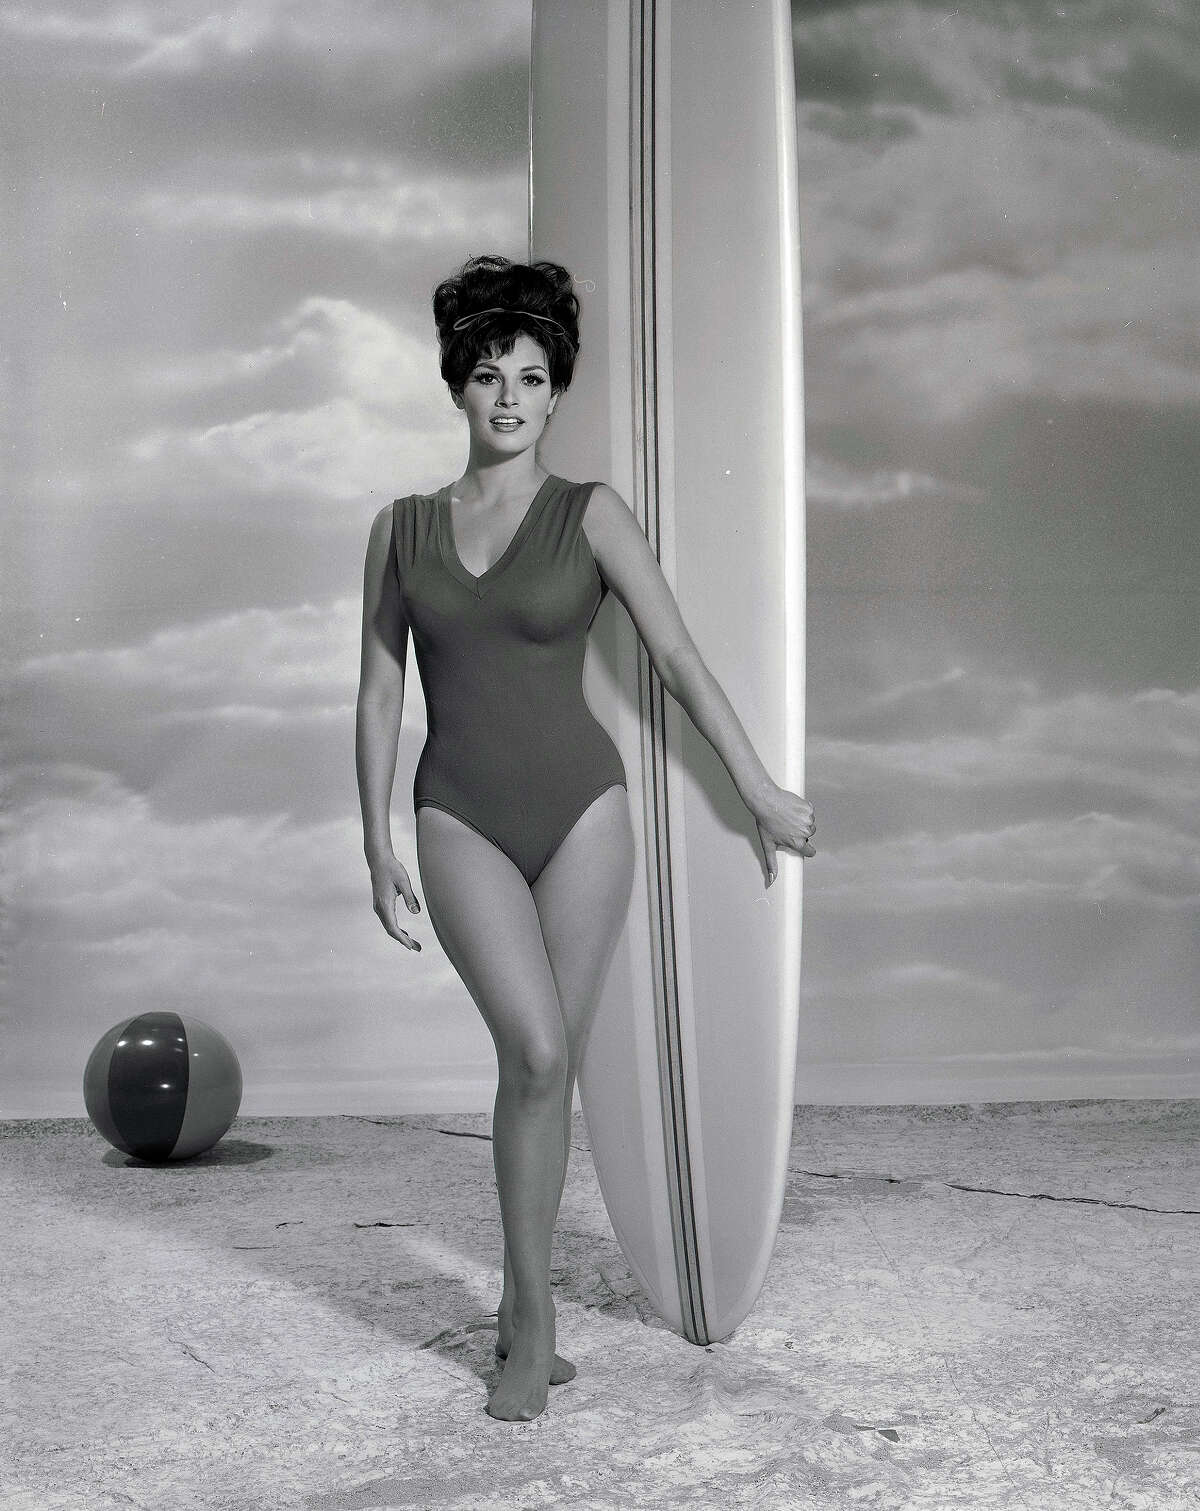 Raquel Welch in 1964. More photos: Famous movie bikinis